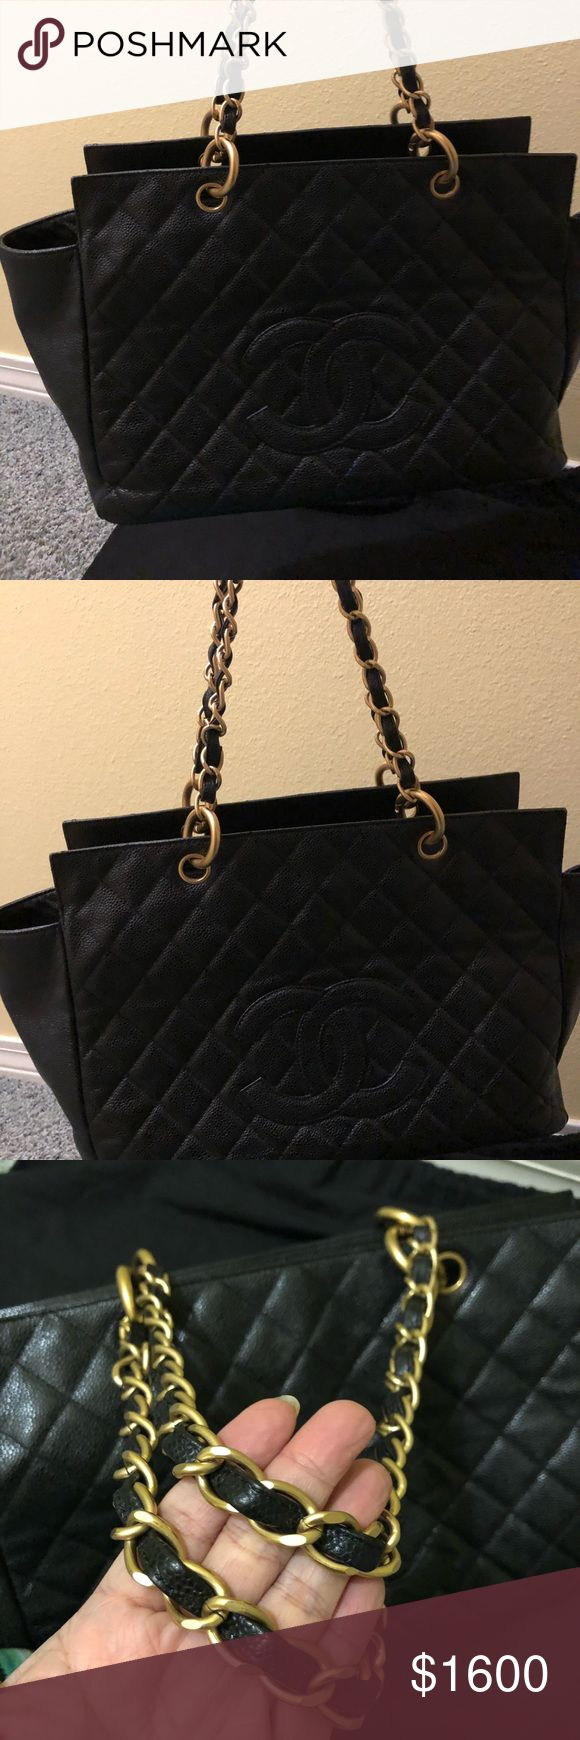 Authentic Vintage Chanel Caviar  timeless tote No inclusion ,no Authenticity card,no box , provided Dust bag Only the flaws in the Zipper the leather but Poshmark will Authenticate it CHANEL Bags Totes